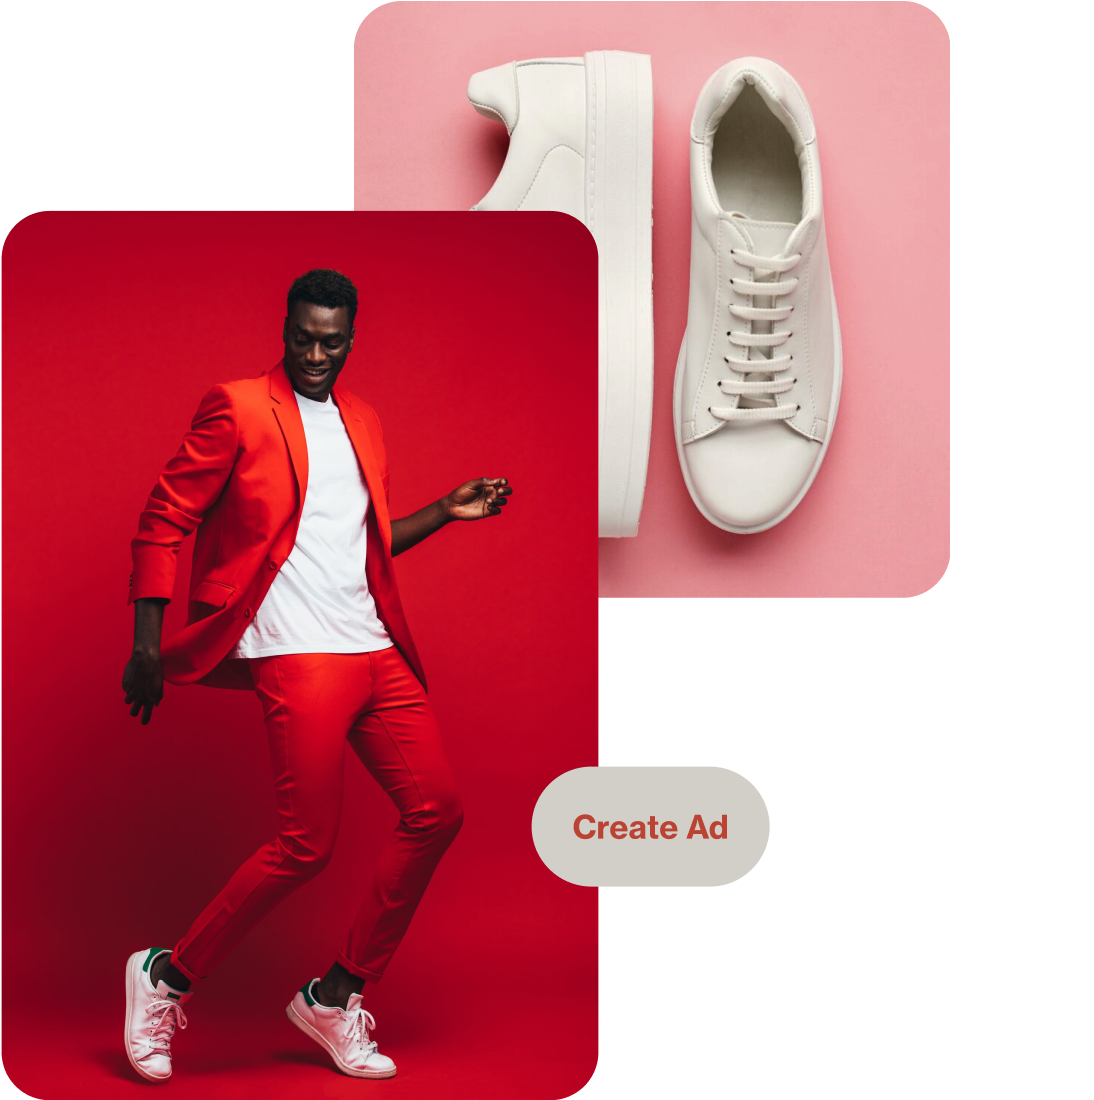 Two Pins depicting a pair of white sneakers on a pink background and a dancing Black man dressed in a red suit, white t-shirt and white sneakers on a red background